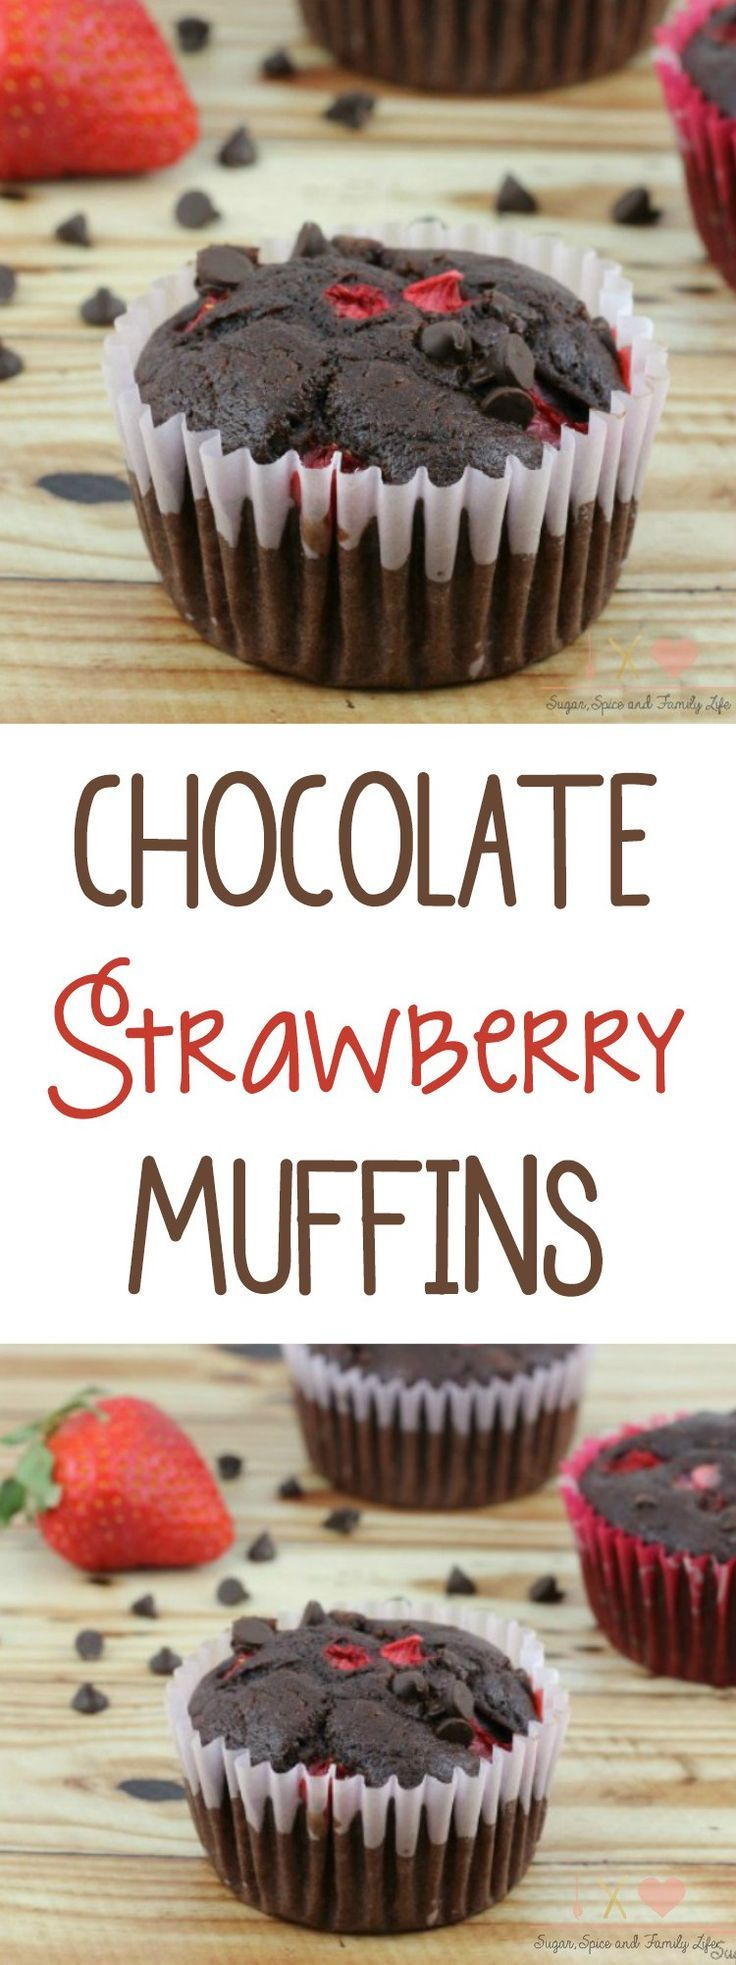 If you love chocolate covered strawberries, then you need to make Chocolate Strawberry Muffins. Each chocolate muffin is filled with chocolate chips and strawberries. - Chocolate Strawberry Muffins Recipe on Sugar, Spice and Family Life #chocolatestrawberry #muffins #chocolate #chocolatechip #chocolatemuffins #chocolatechipmuffins #chocolatechocolatechip #chocolatechocolatechipmuffins #strawberry #strawberrymuffins #recipe